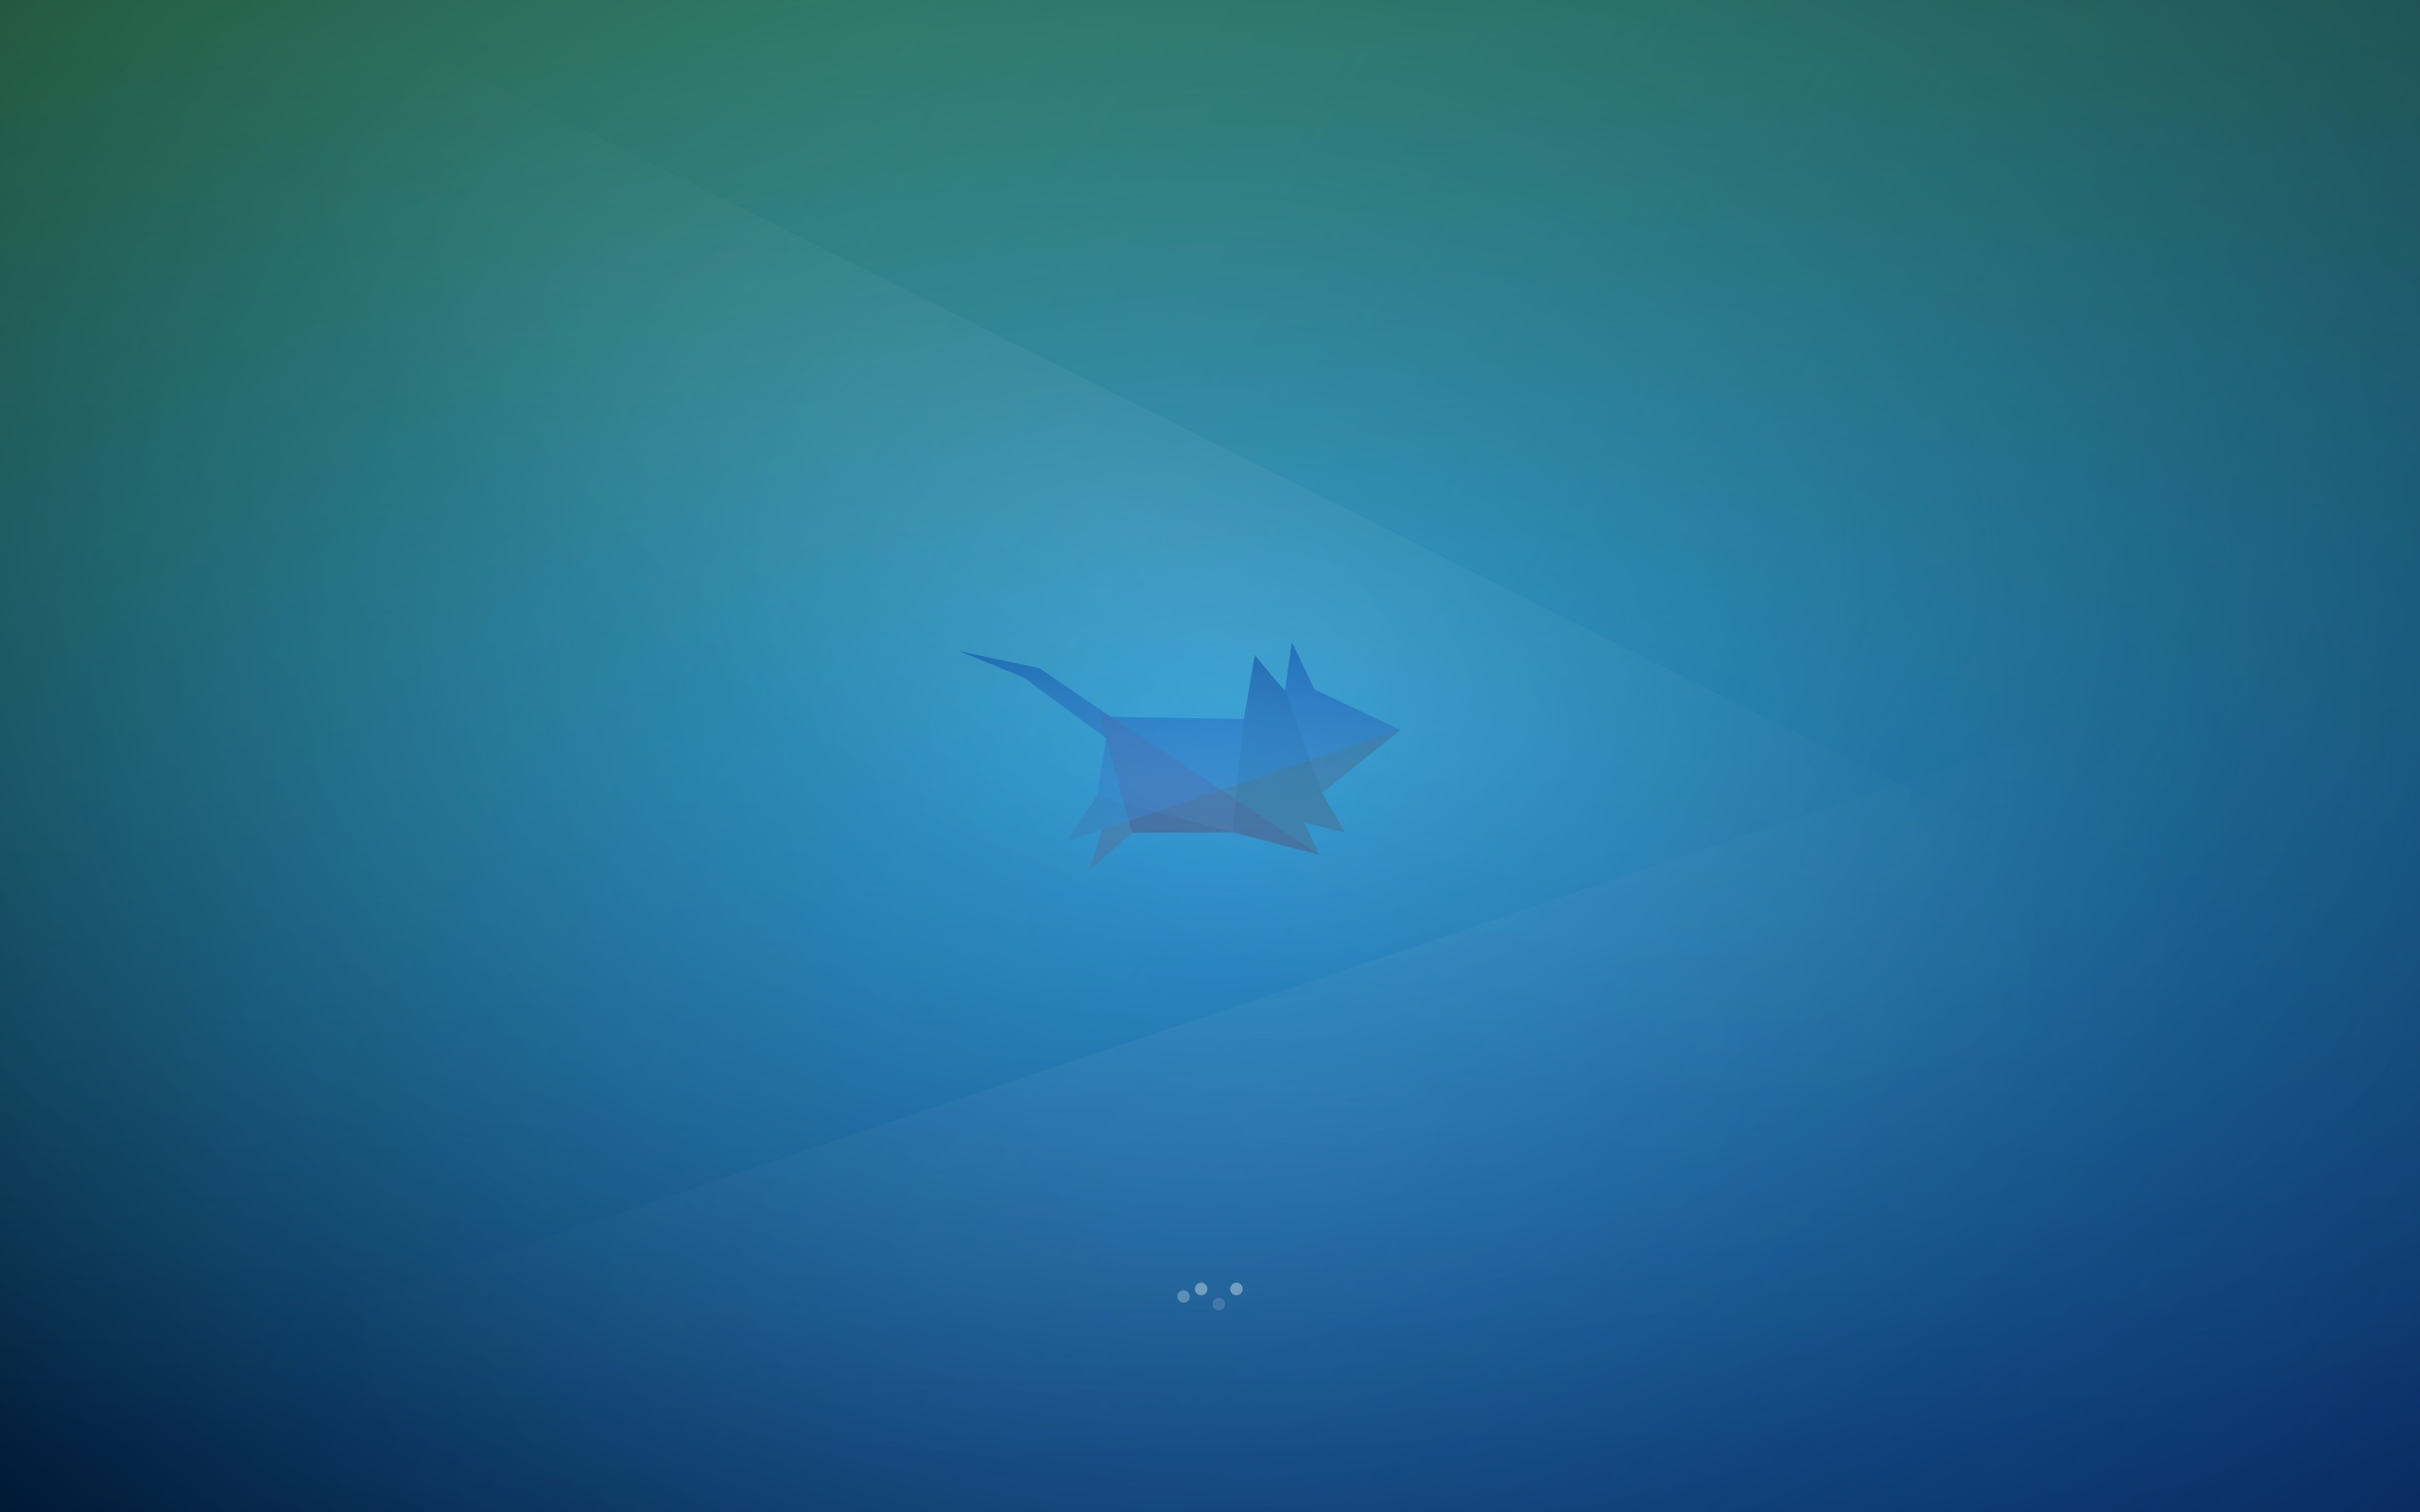 Xfce 4 12 Released After  Ubuntu 14.04 Wallpaper